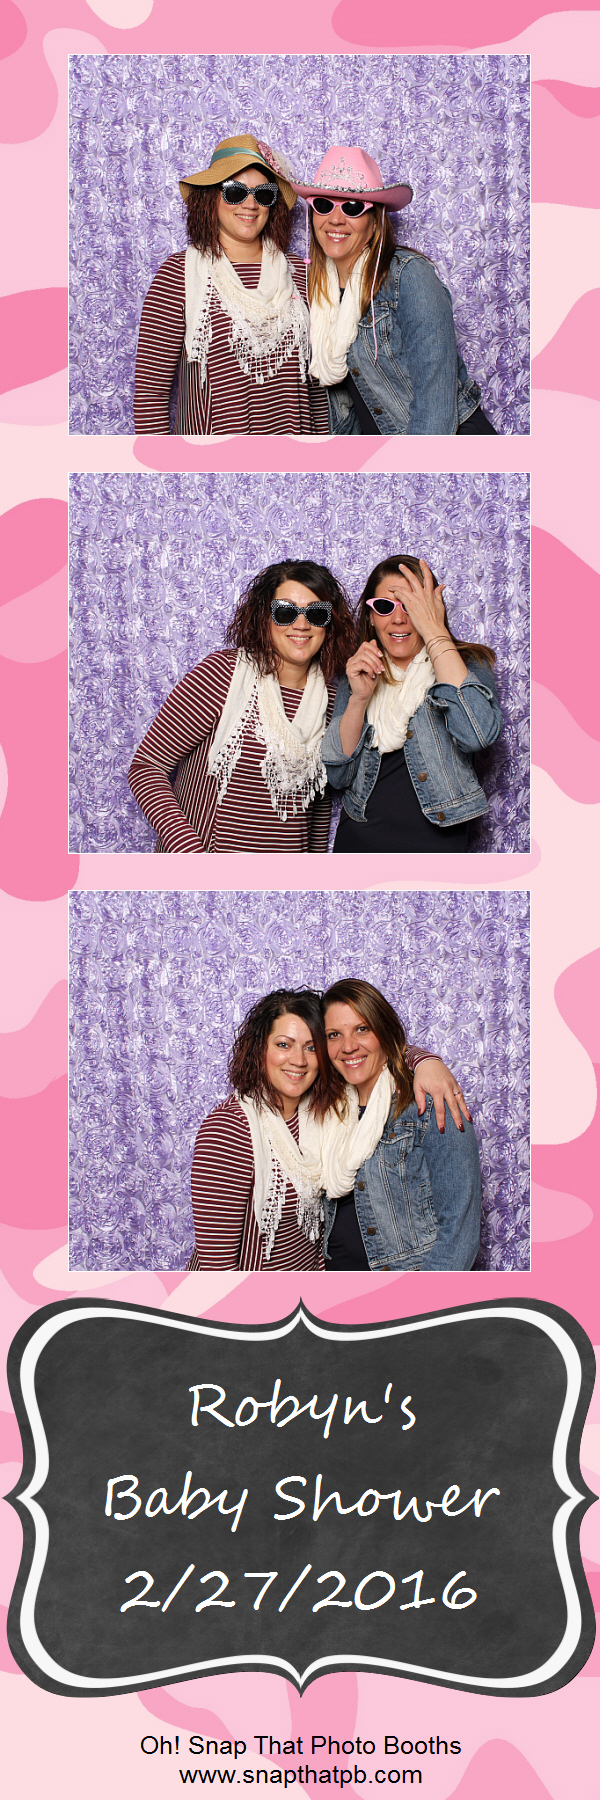 Oh Snap That Photo Booths Image 3